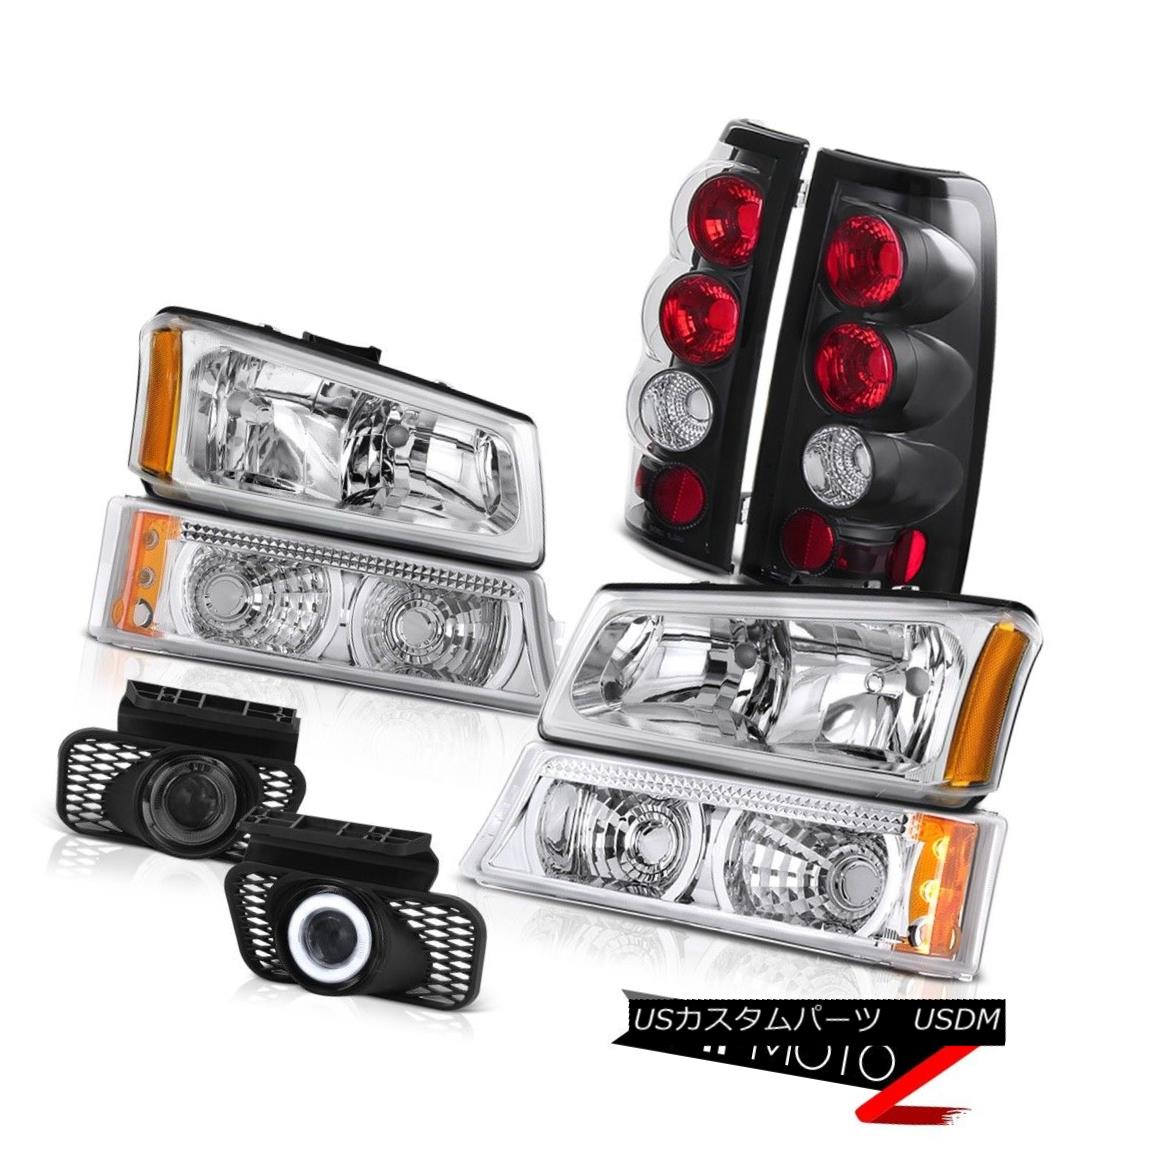 ヘッドライト Headlights Chrome Signal Bumper Brake Taillamps LED Foglamps 2003-2006 Silverado ヘッドライトクロム信号バンパーブレーキタイヤランプLED Foglamps 2003-2006 Silverado